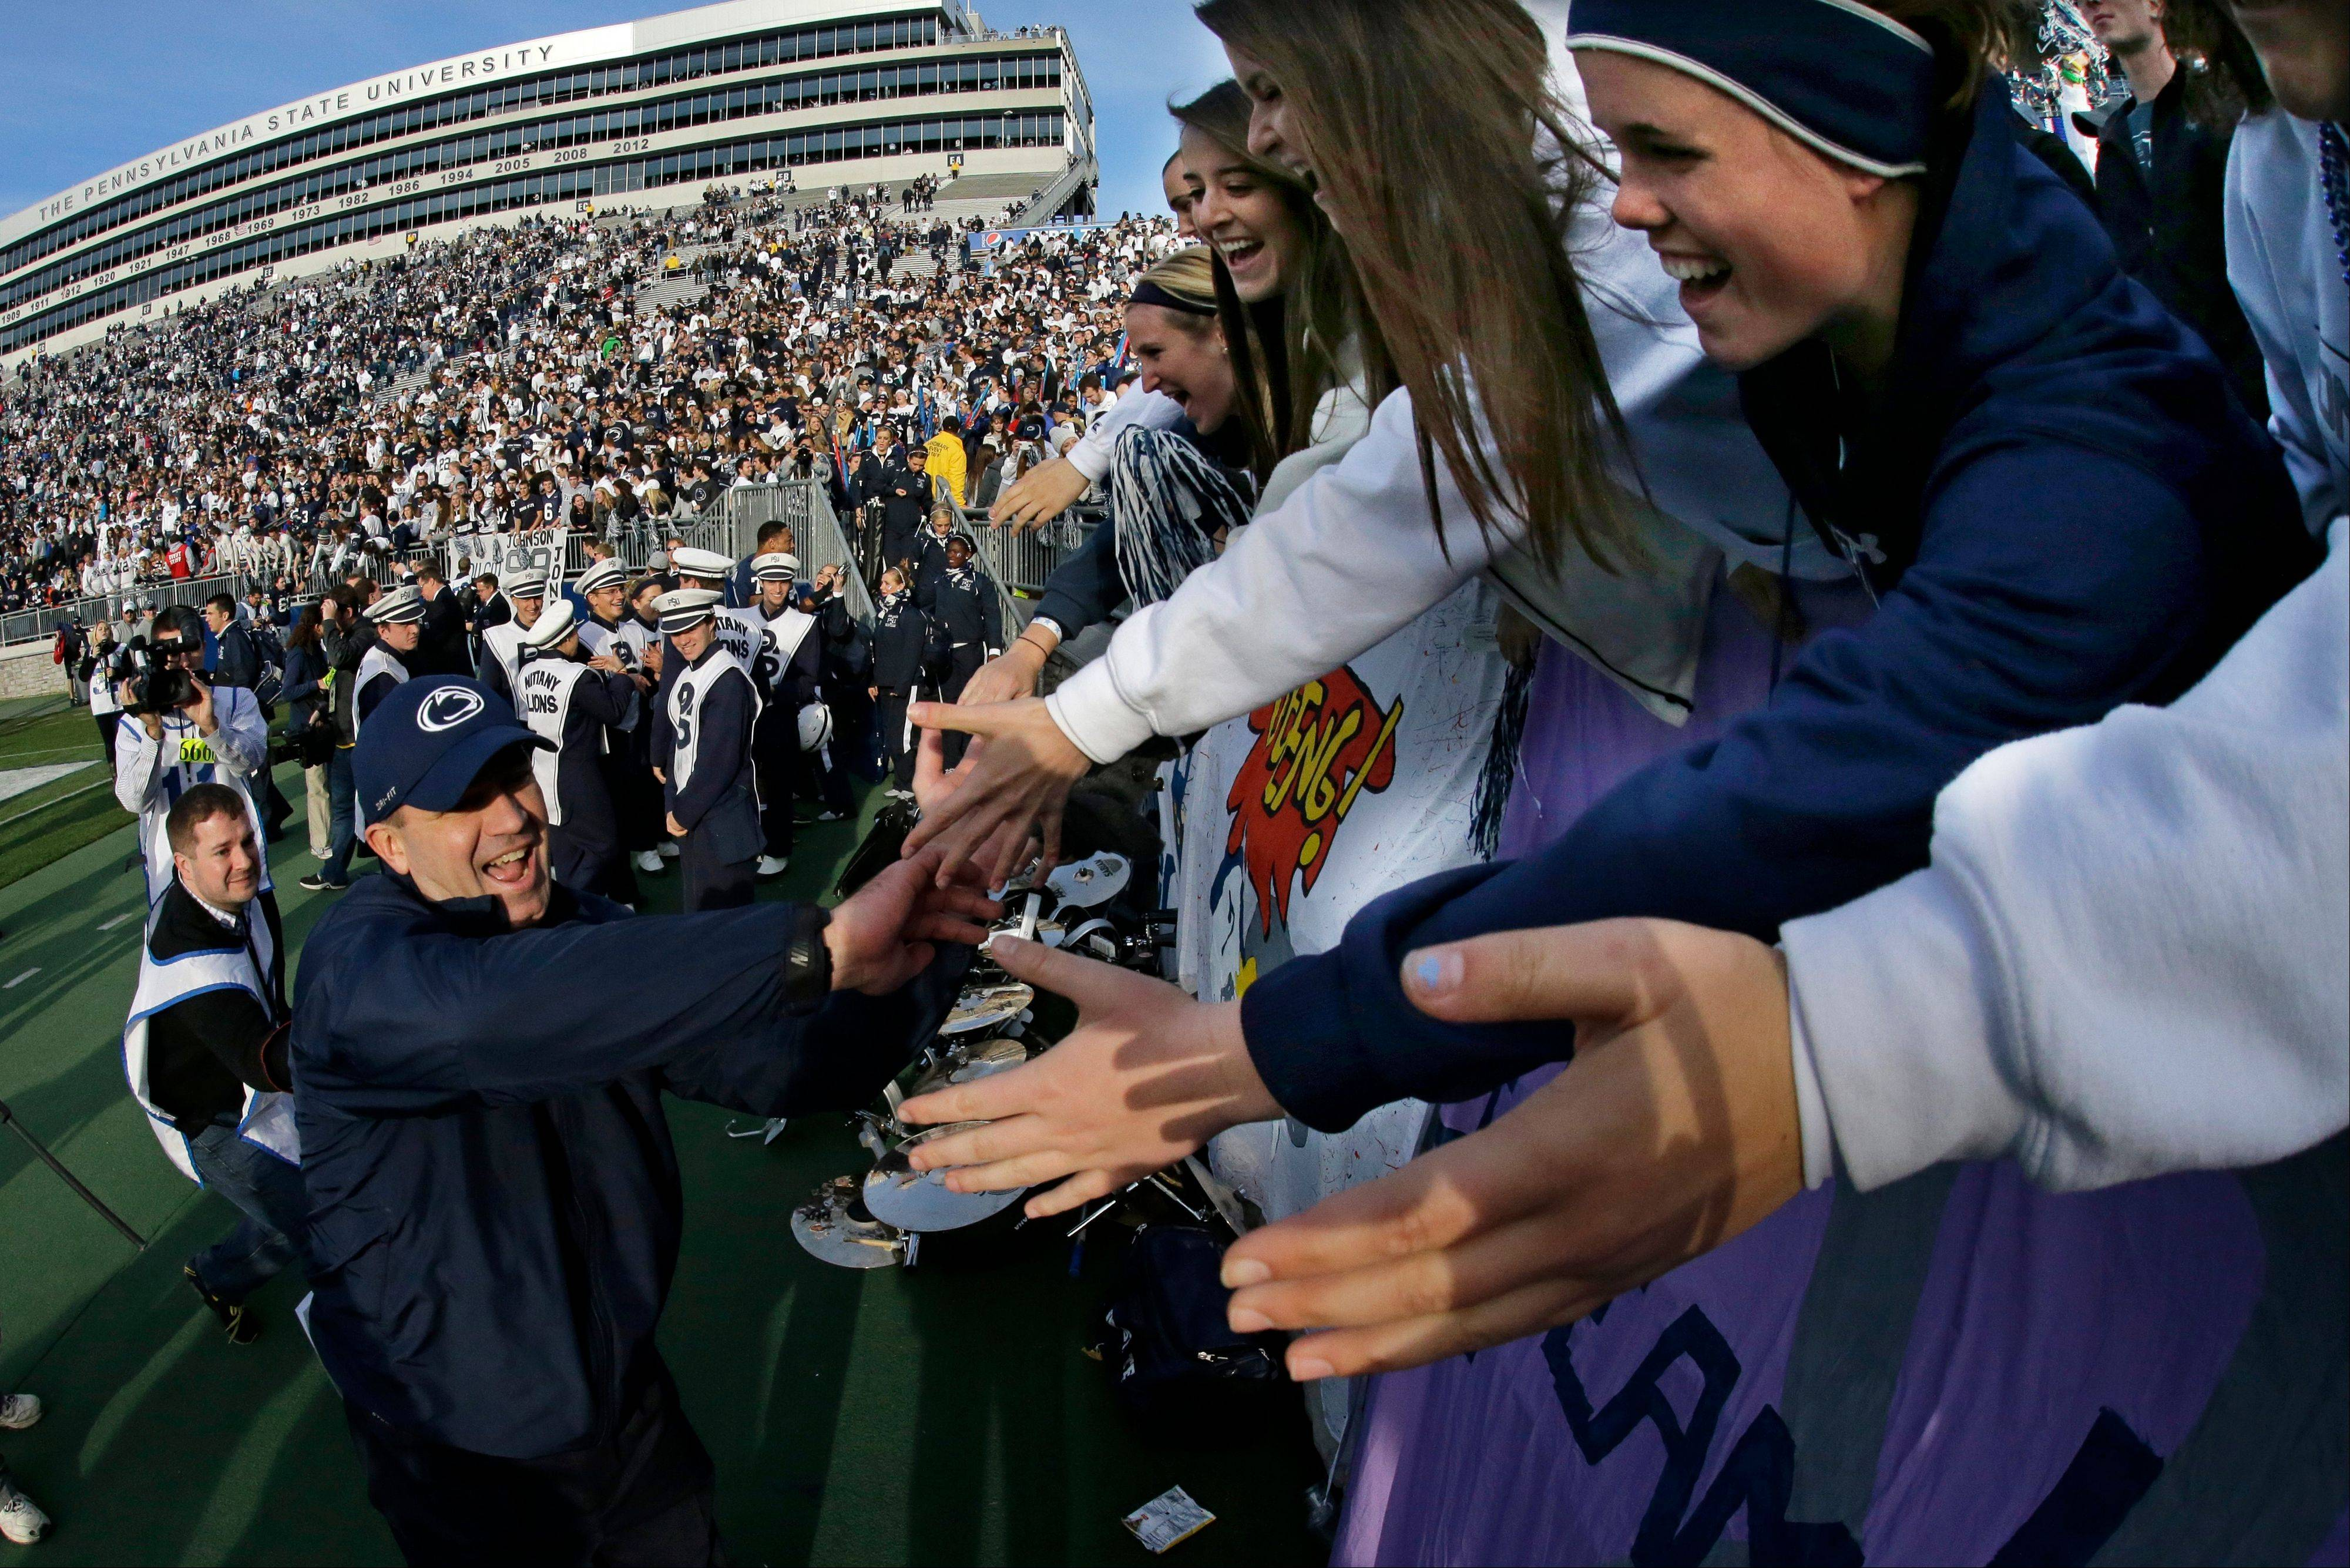 Penn State head football coach Bill O'Brien, left, celebrates with students after last Saturday's home win against Purdue.